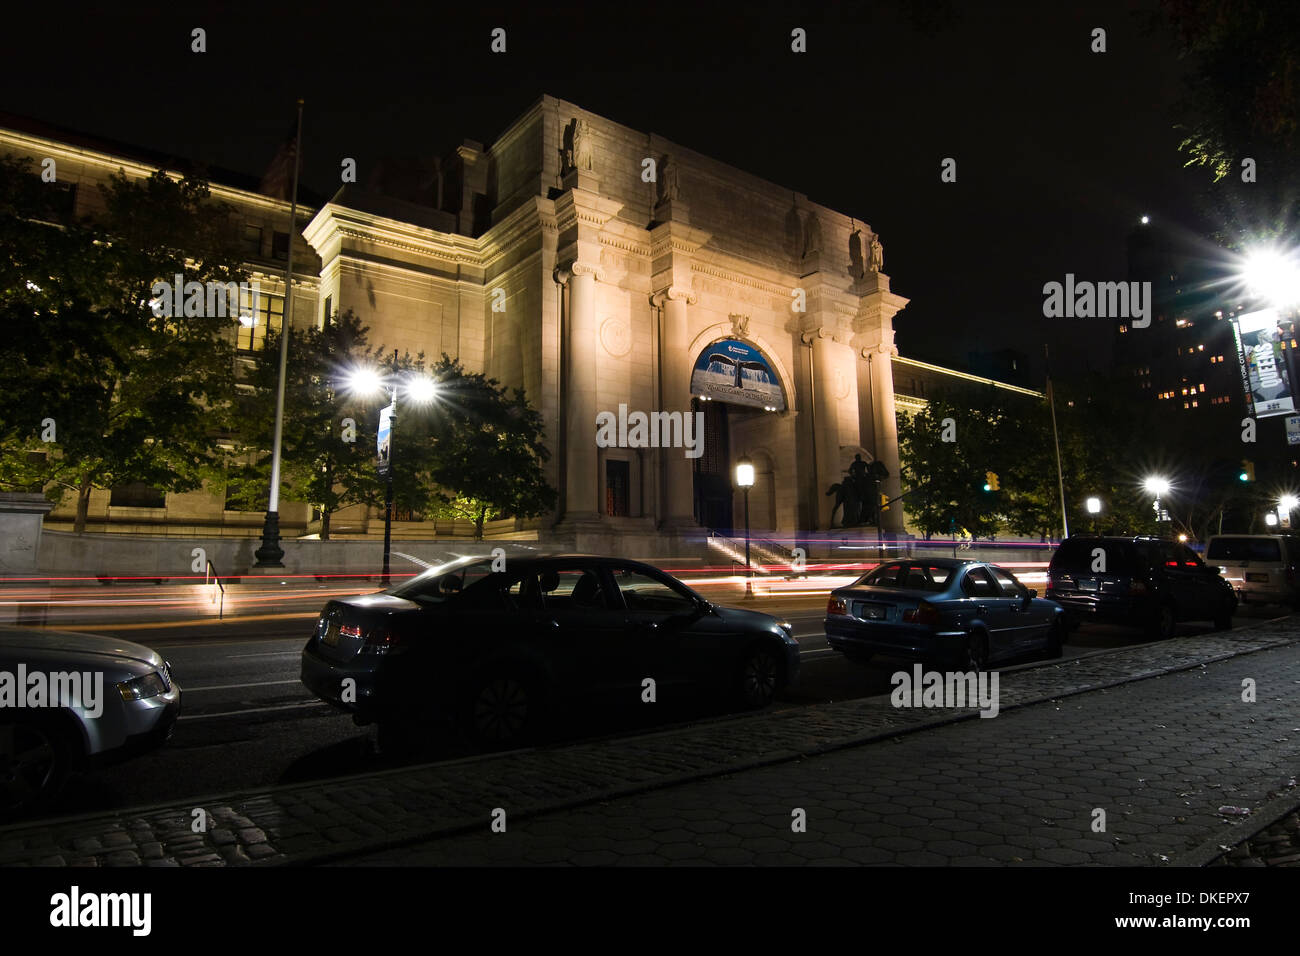 The American Museum of Natural History illuminated at night on Central Park West and 81st Street in New York City - Stock Image